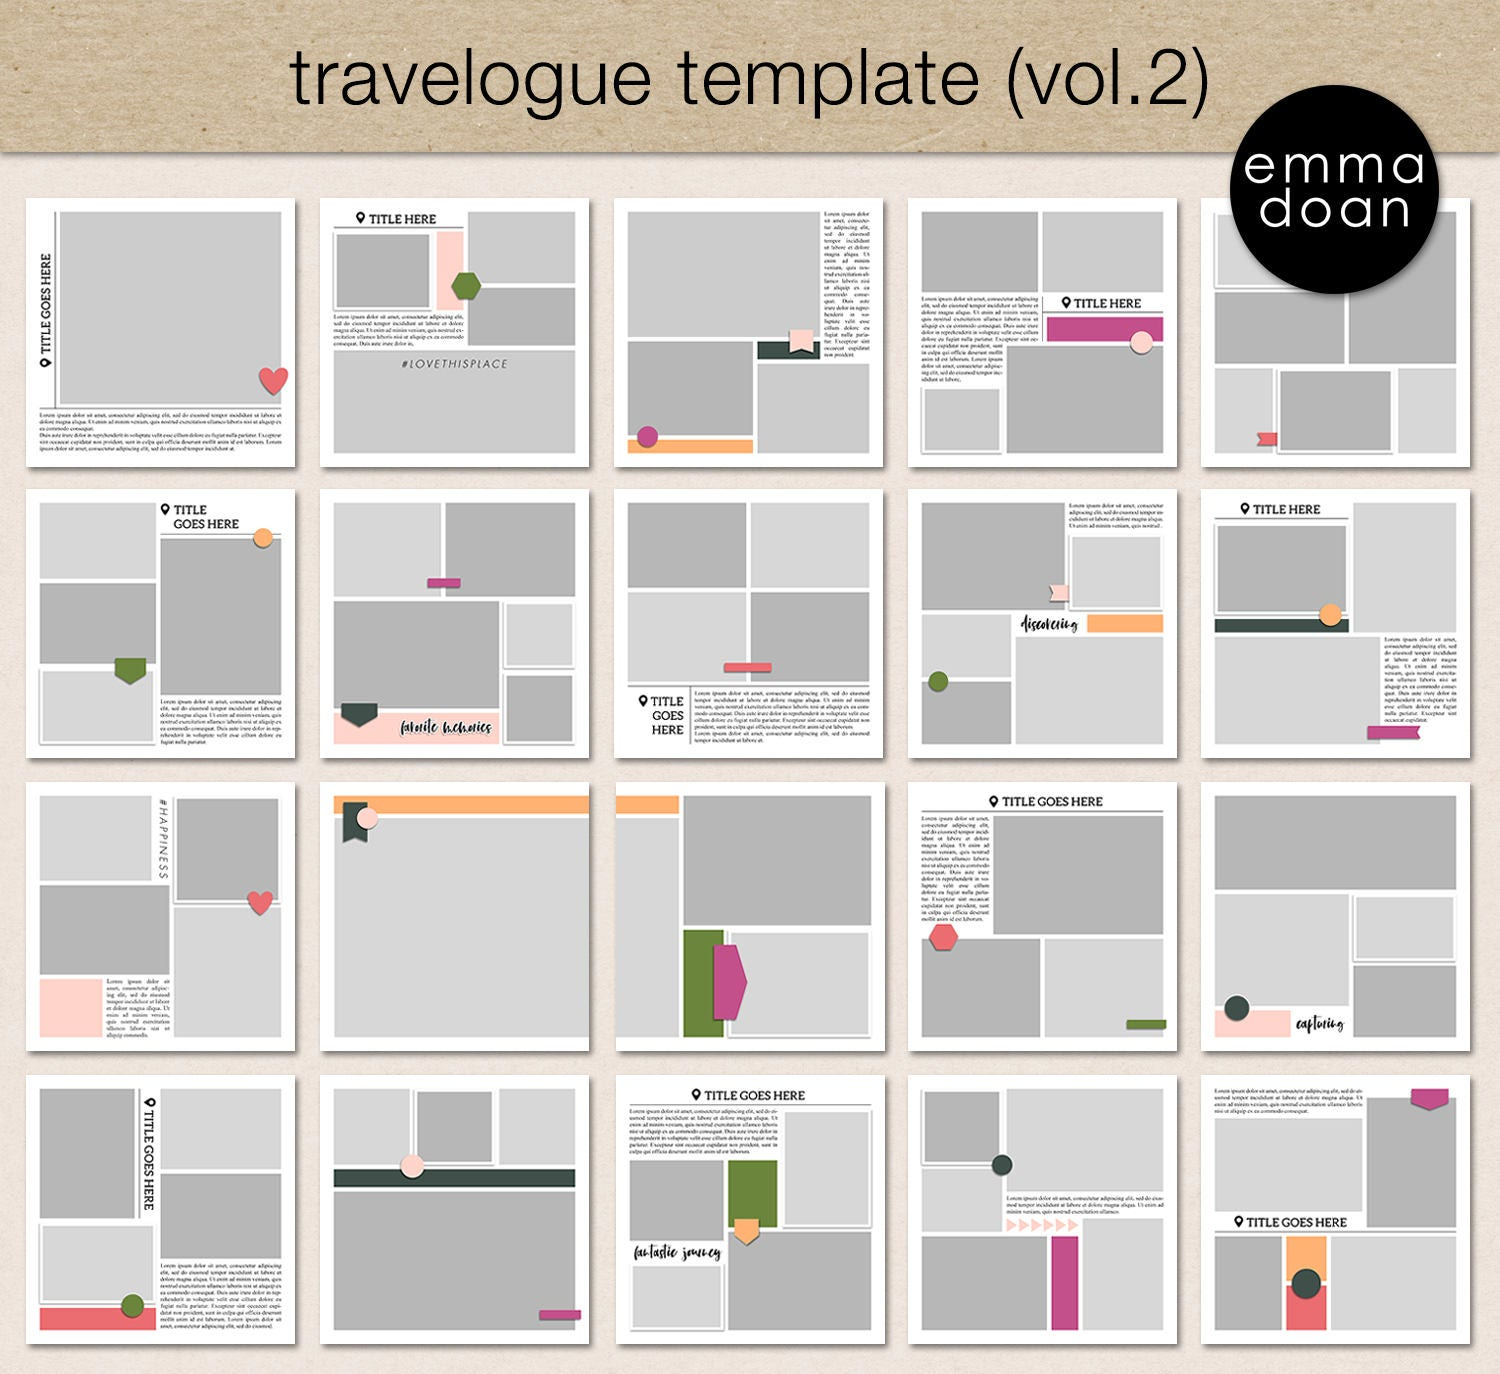 Travelogue Photo Album Template Vol.2 12x12 Travel | Etsy